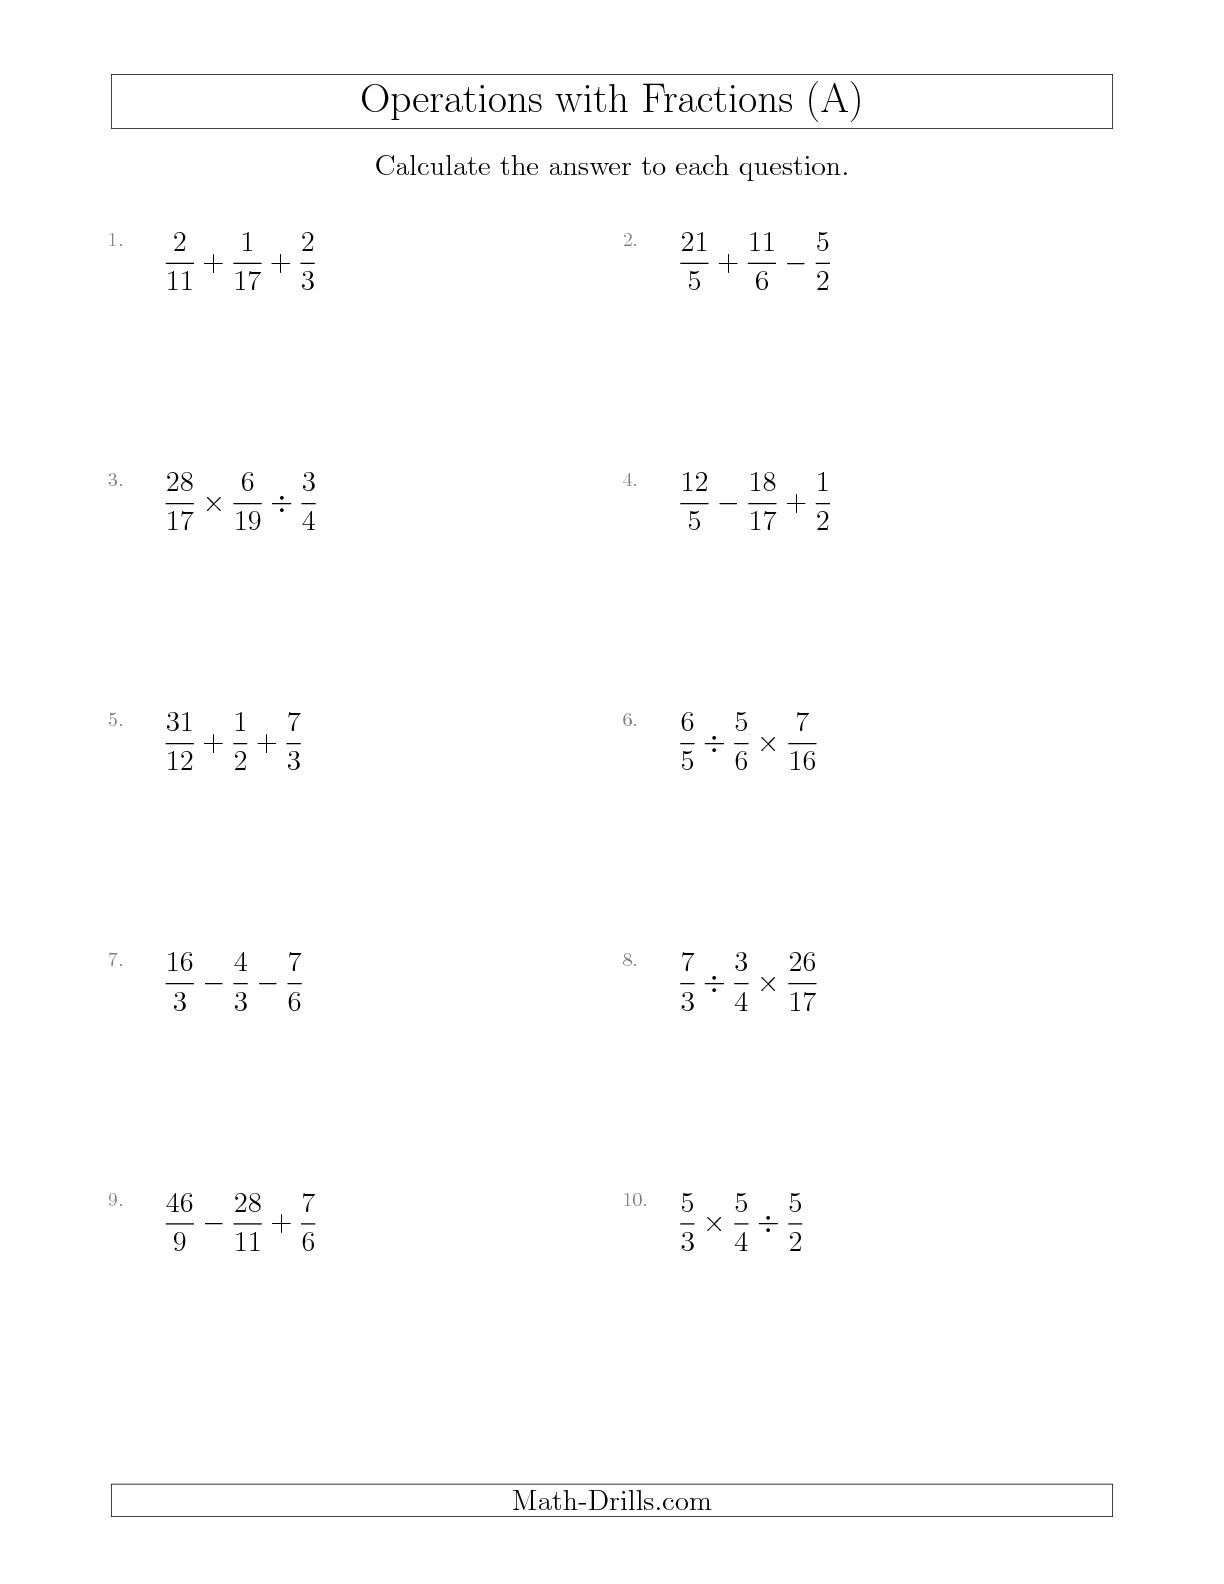 worksheet Common Core Fractions Worksheets new mixed operations with three fractions including improper a math worksheet